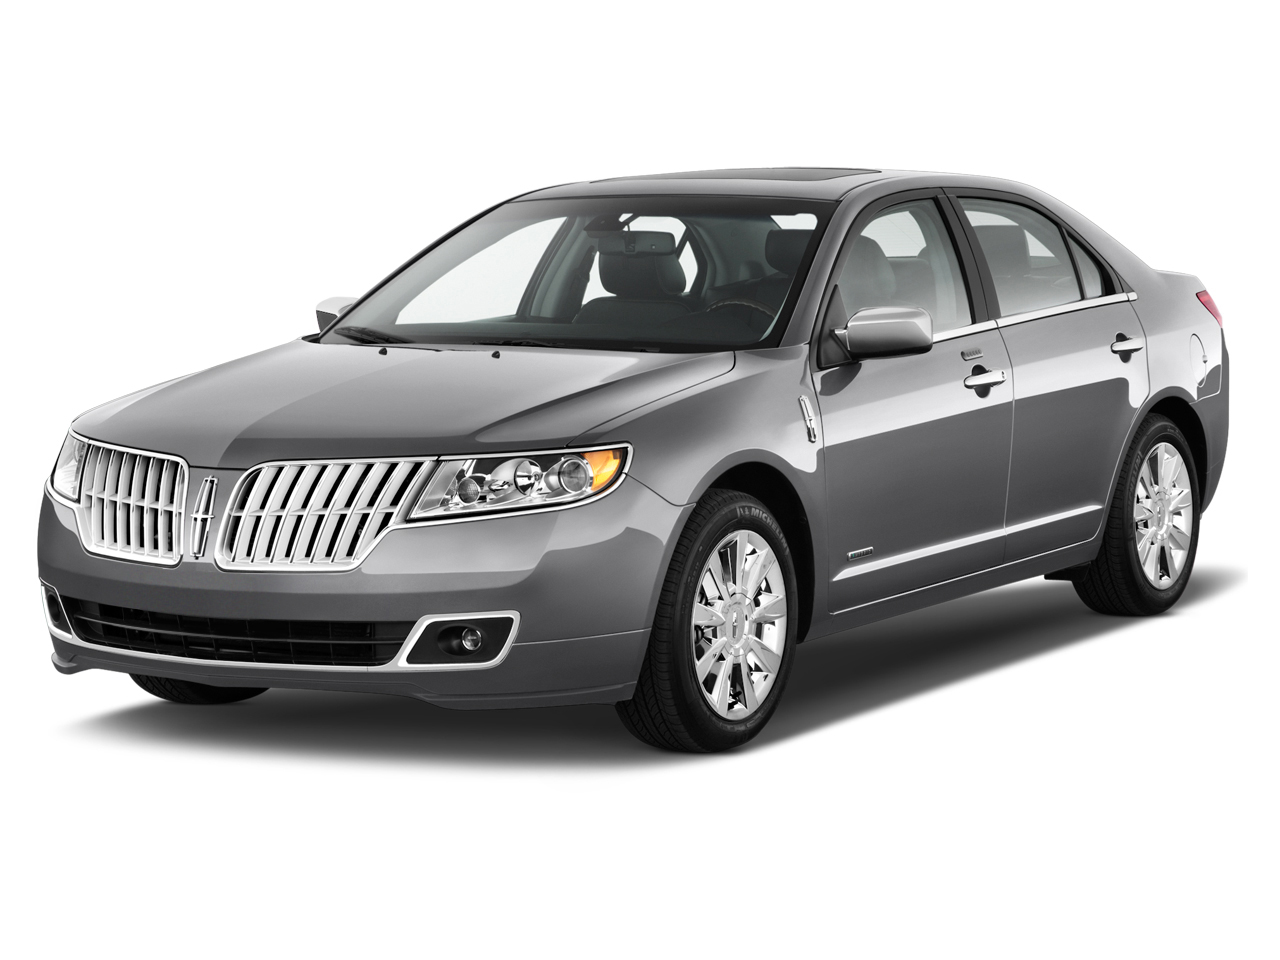 2012 Lincoln Mkz Hybrid Review >> 2012 Lincoln MKZ Review, Ratings, Specs, Prices, and Photos - The Car Connection